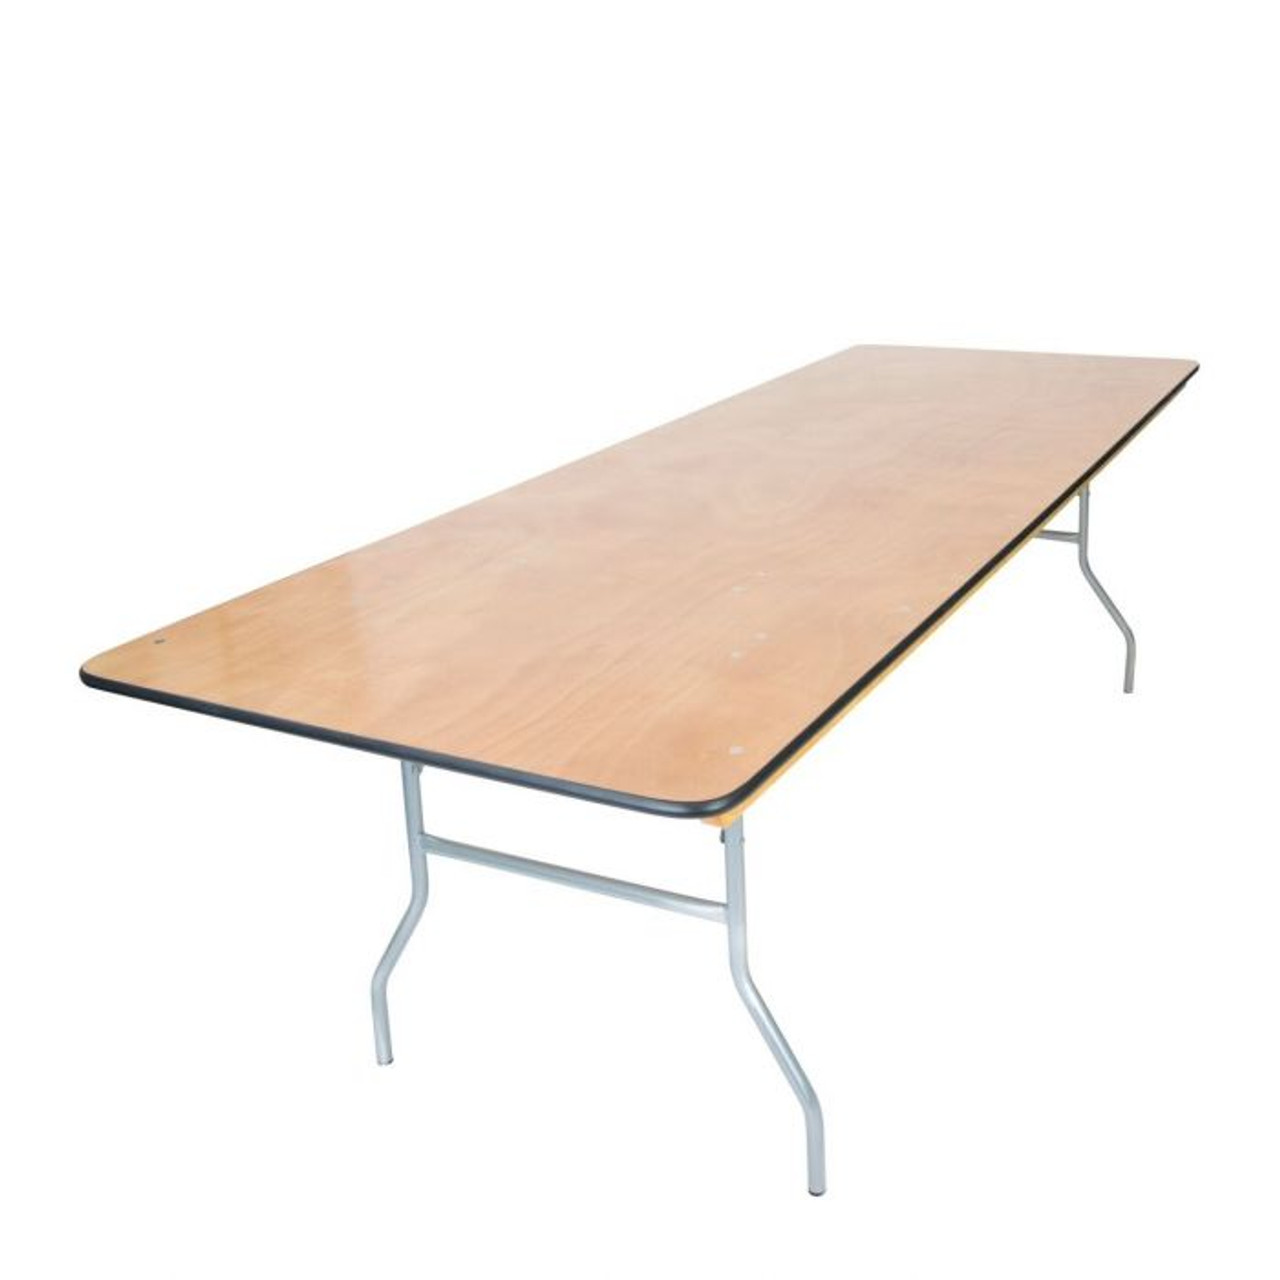 Rectangular Dining Table 8 Ft X 4 Ft Persiano Event Rentals